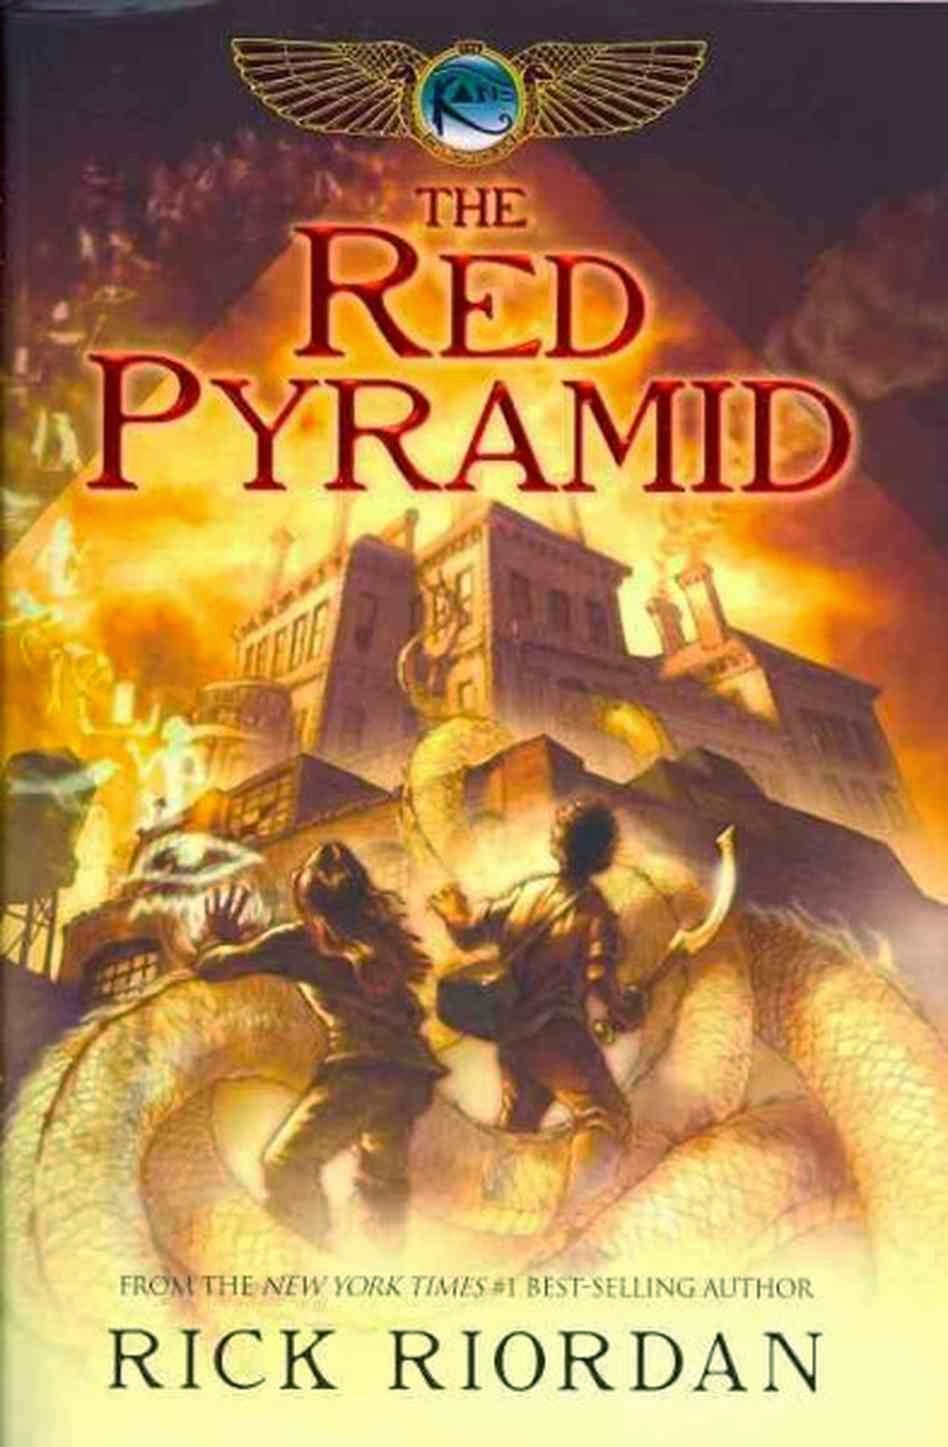 http://hpl.iii.com/search~S1?/tred+pyramid/tred+pyramid/1%2C2%2C6%2CB/frameset&FF=tred+pyramid&1%2C%2C5/indexsort=-